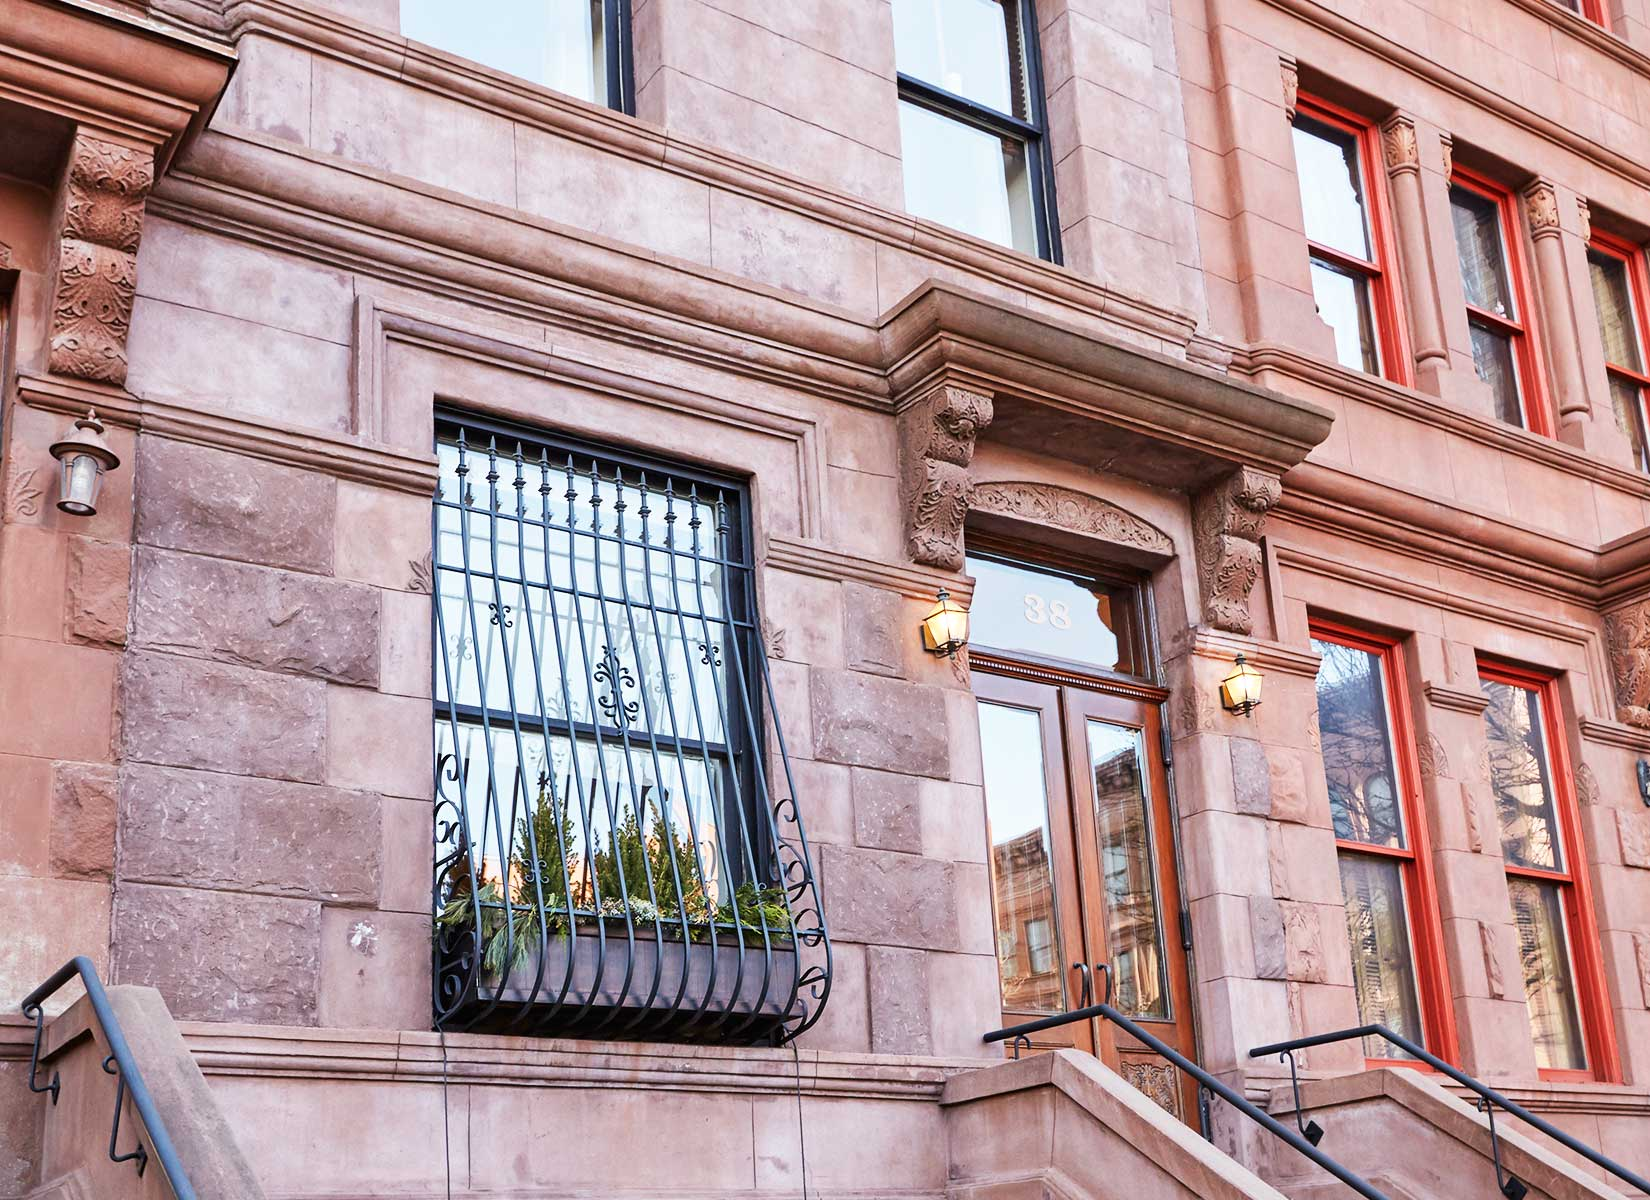 This single-family townhouse has a prime central location in Harlem. Originally built in 1909, the residence has been renovated to an exacting standard. Exceptional care was taken to preserve the historic character of this beautiful home while incorporating every modern luxury.